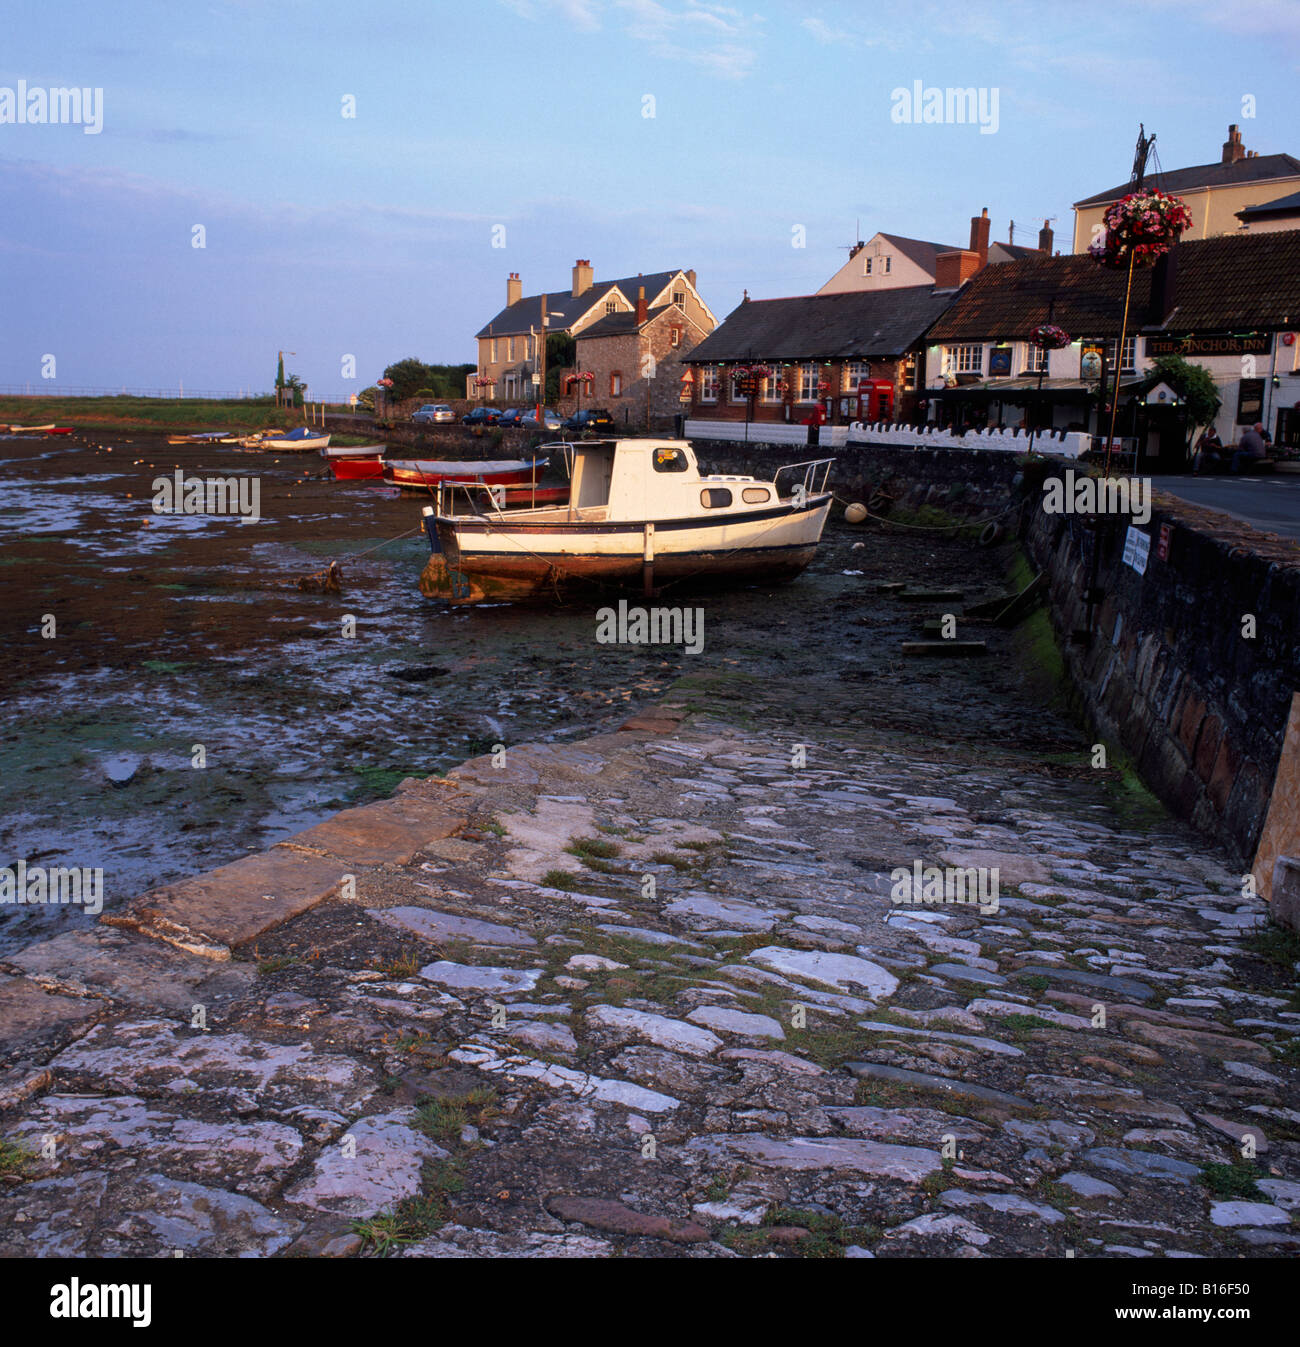 Boat in harbour at low tide, Cockwood, Devon, UK - Stock Image